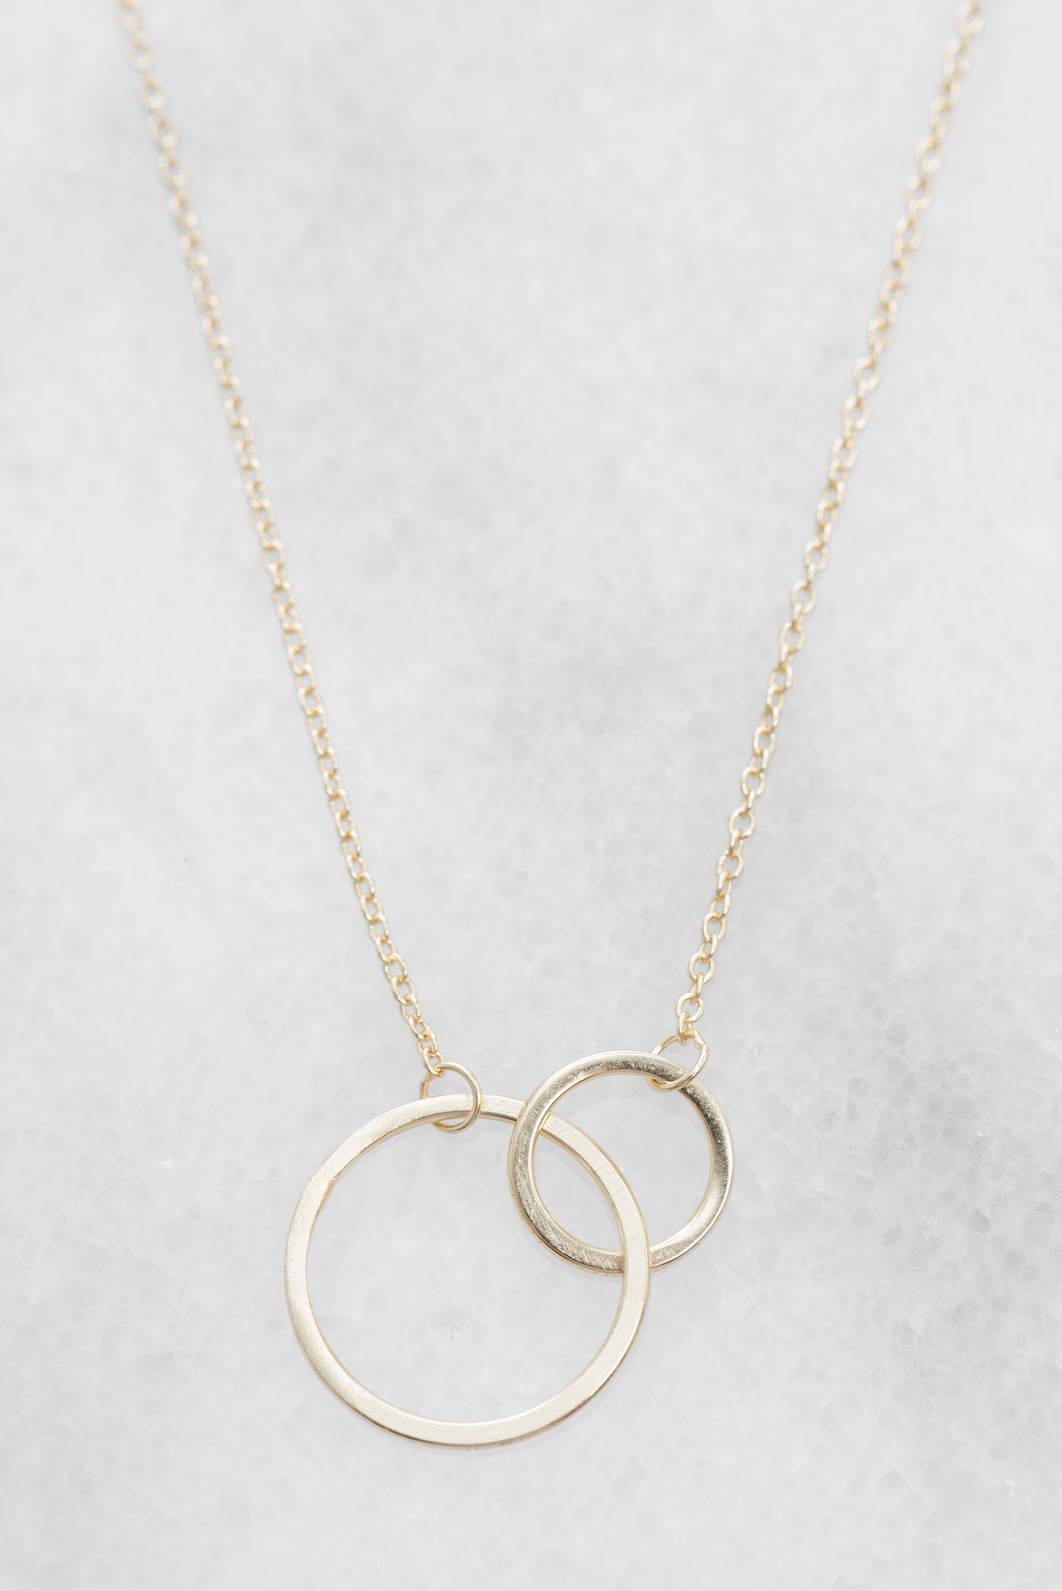 South Moon Under CZ Curved Bar Delicate Necklace Clear FB32M48ve